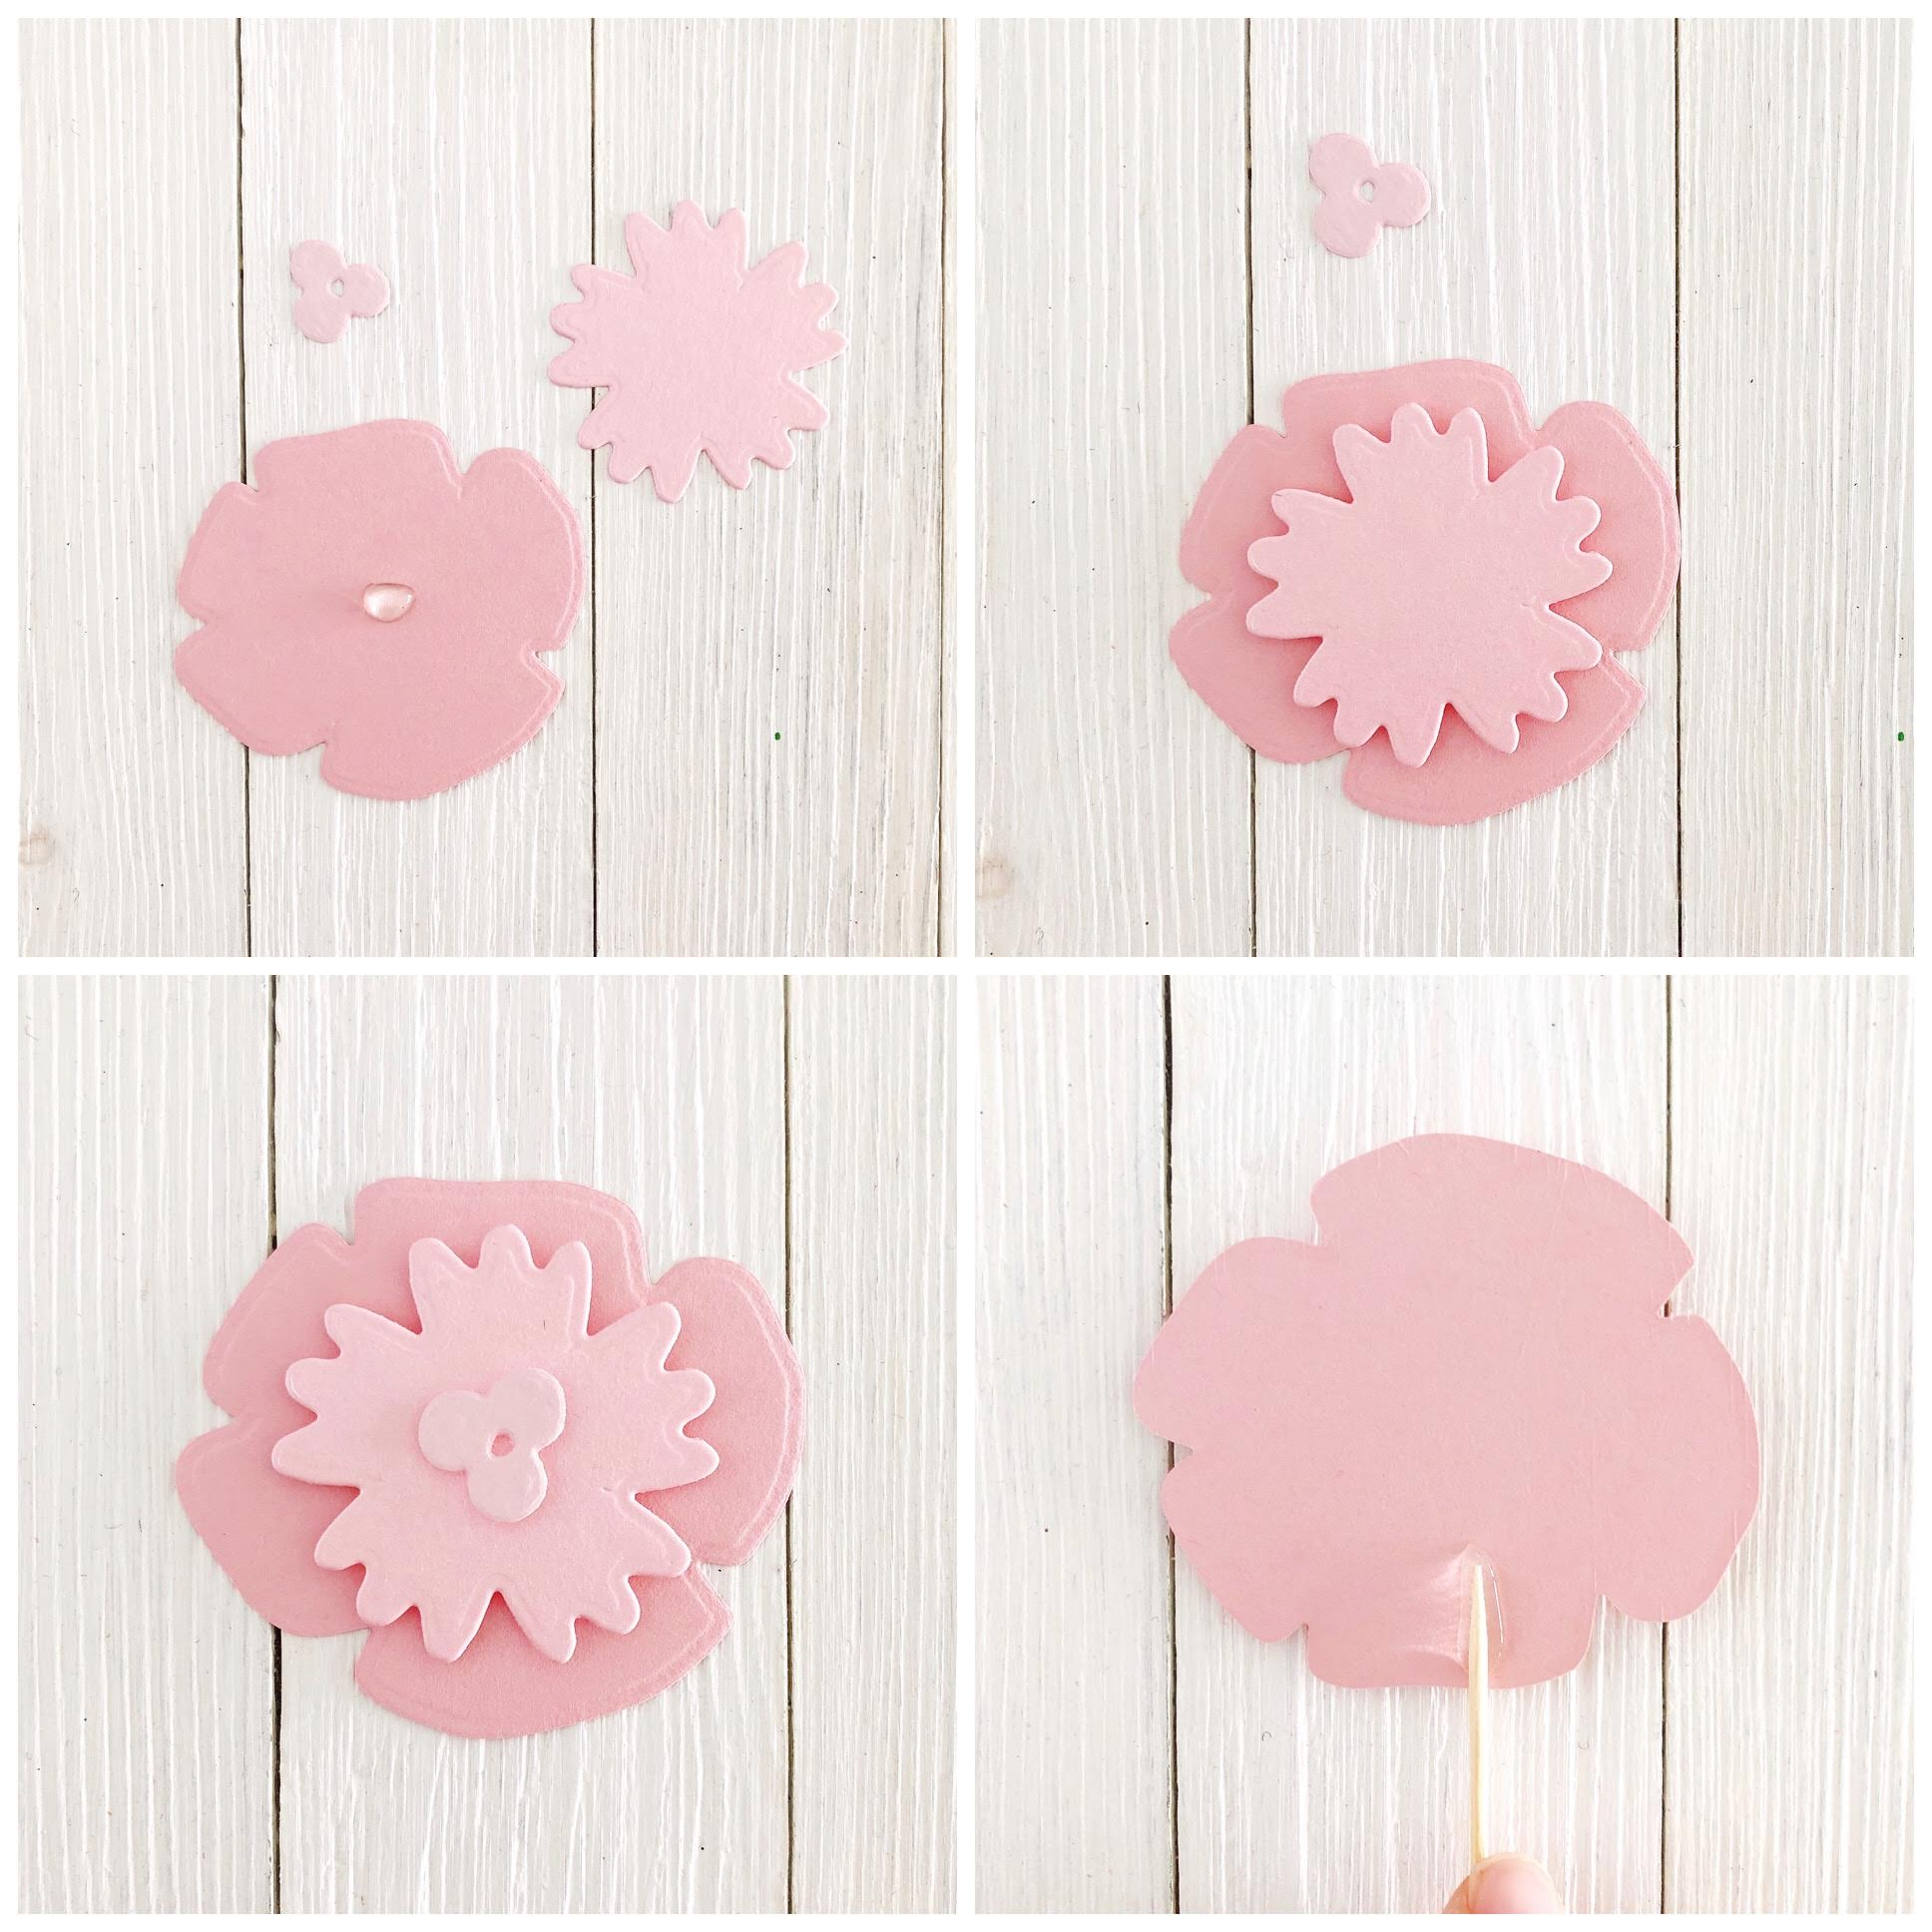 DIY Ombre Layered Cupcake Toppers Steps 1-4